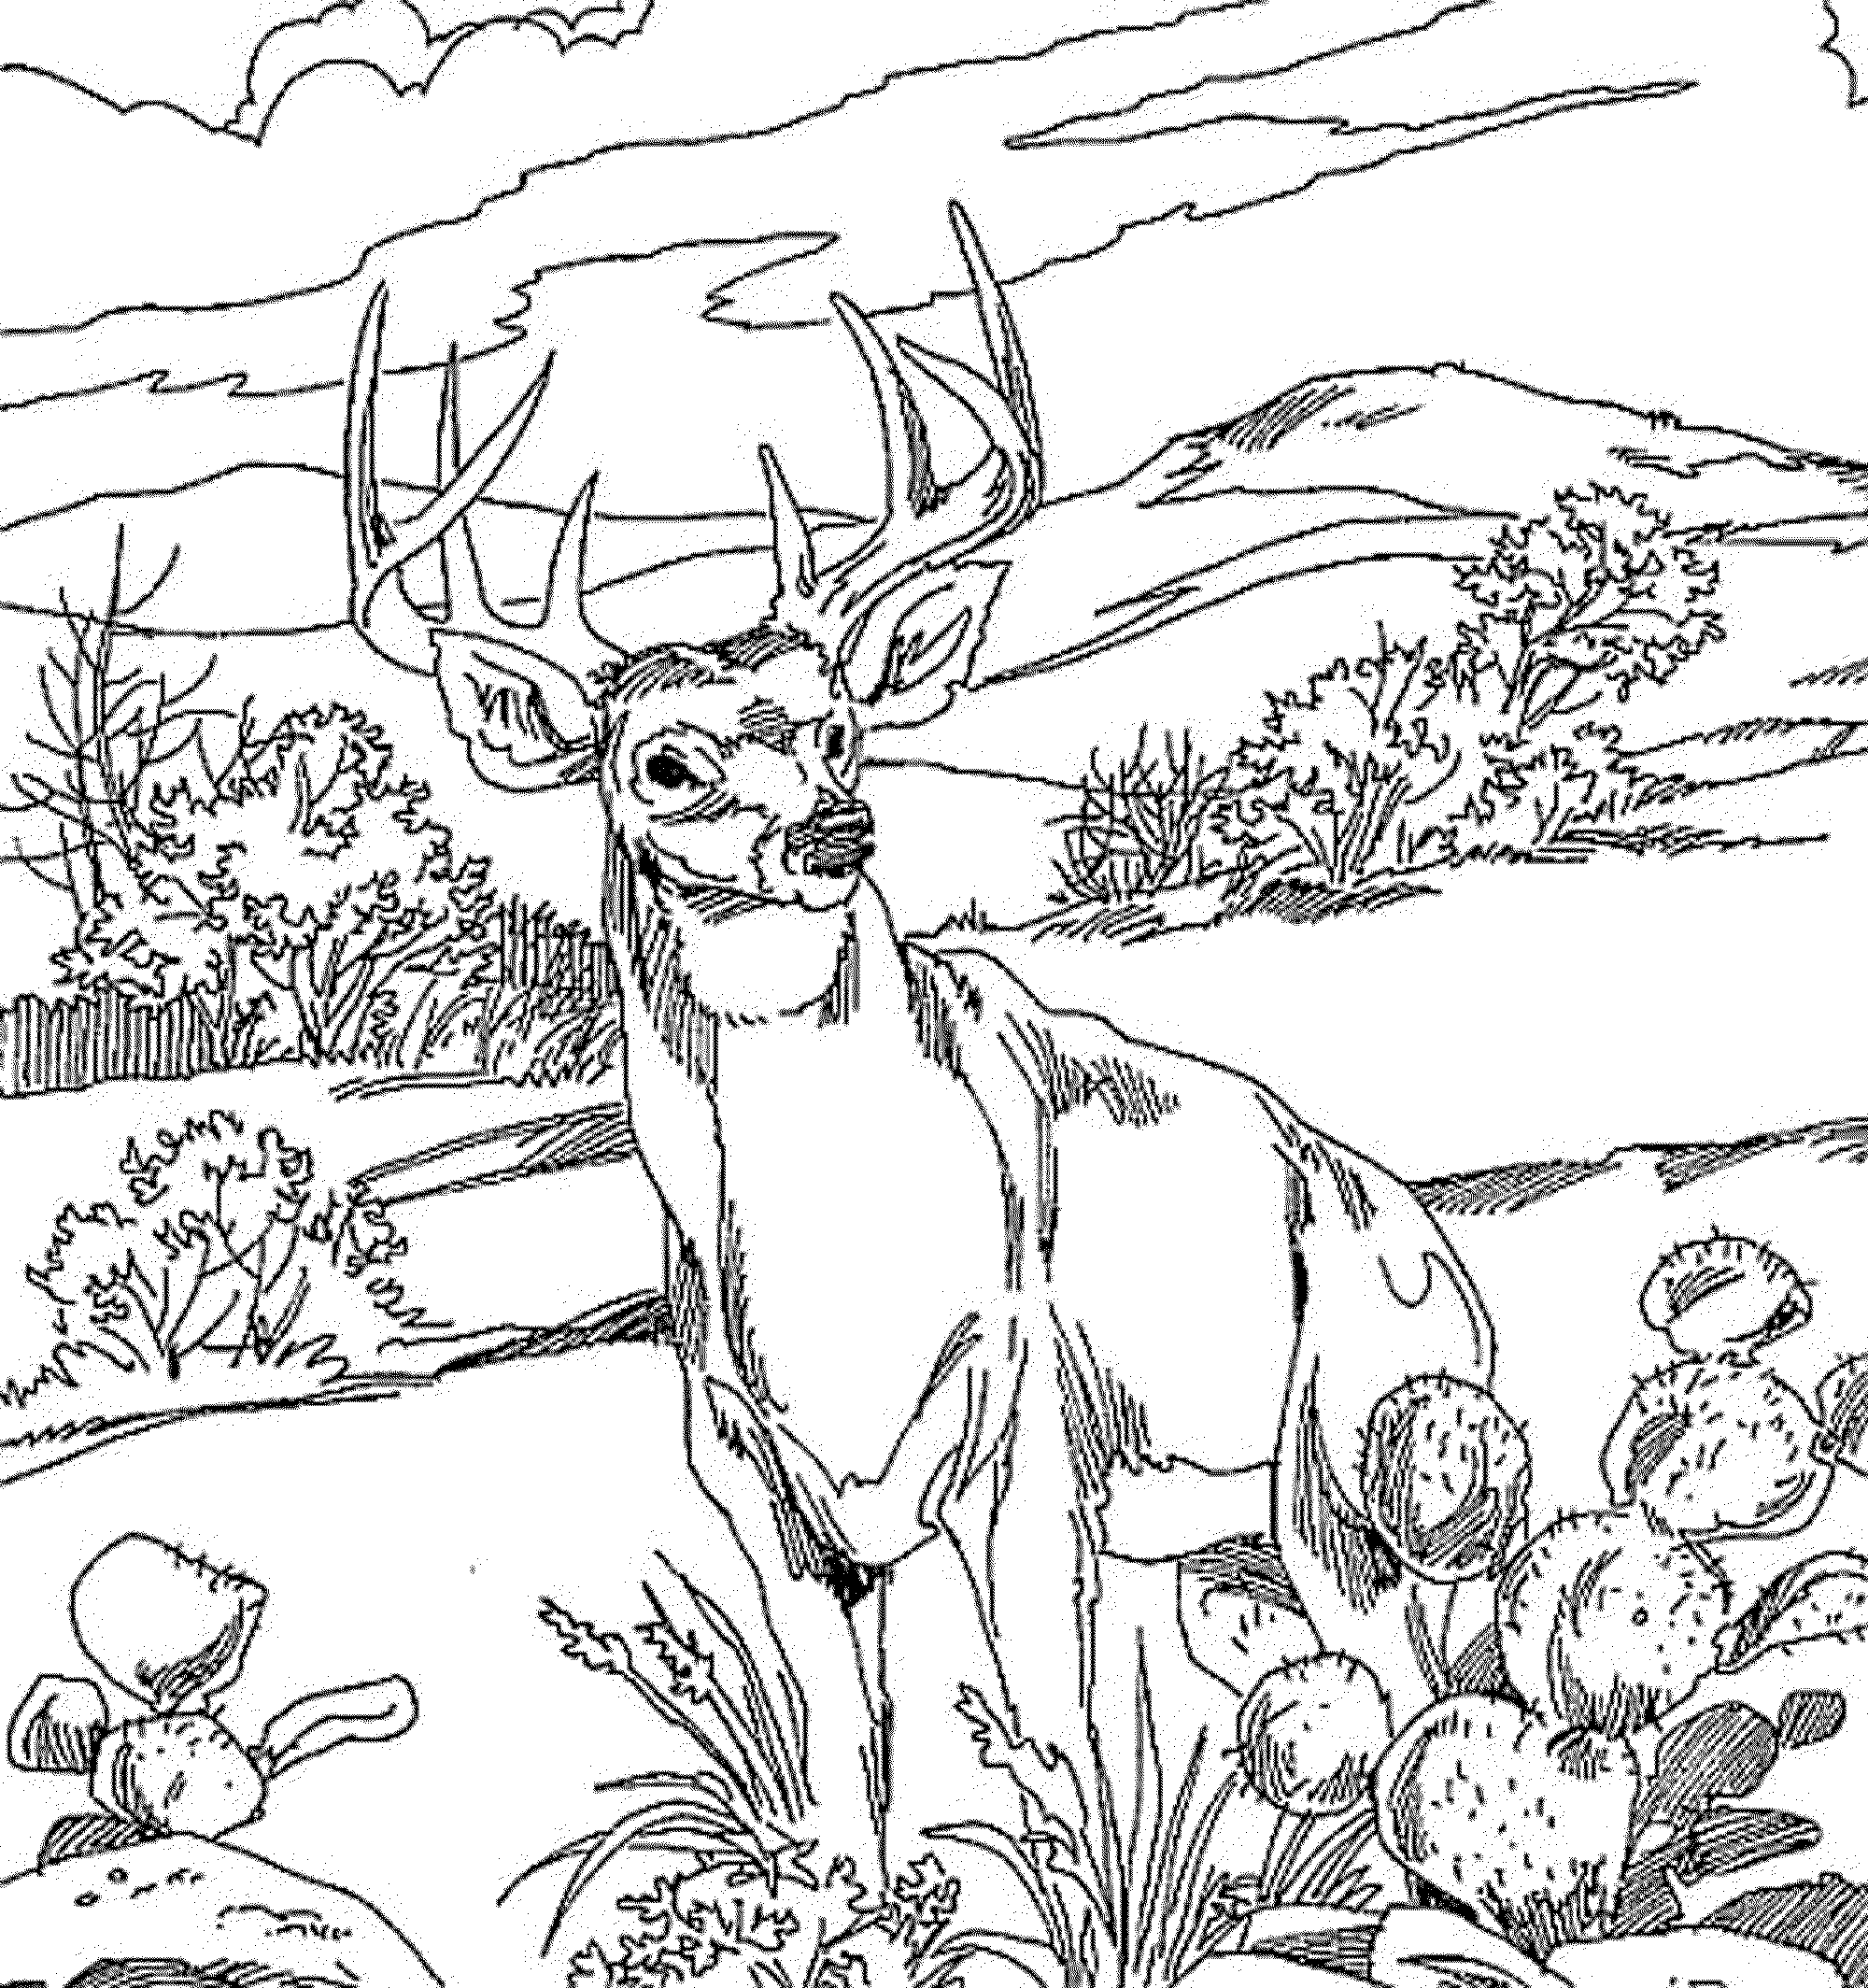 farm animals for coloring farm coloring pages for adults at getdrawings free download animals coloring for farm